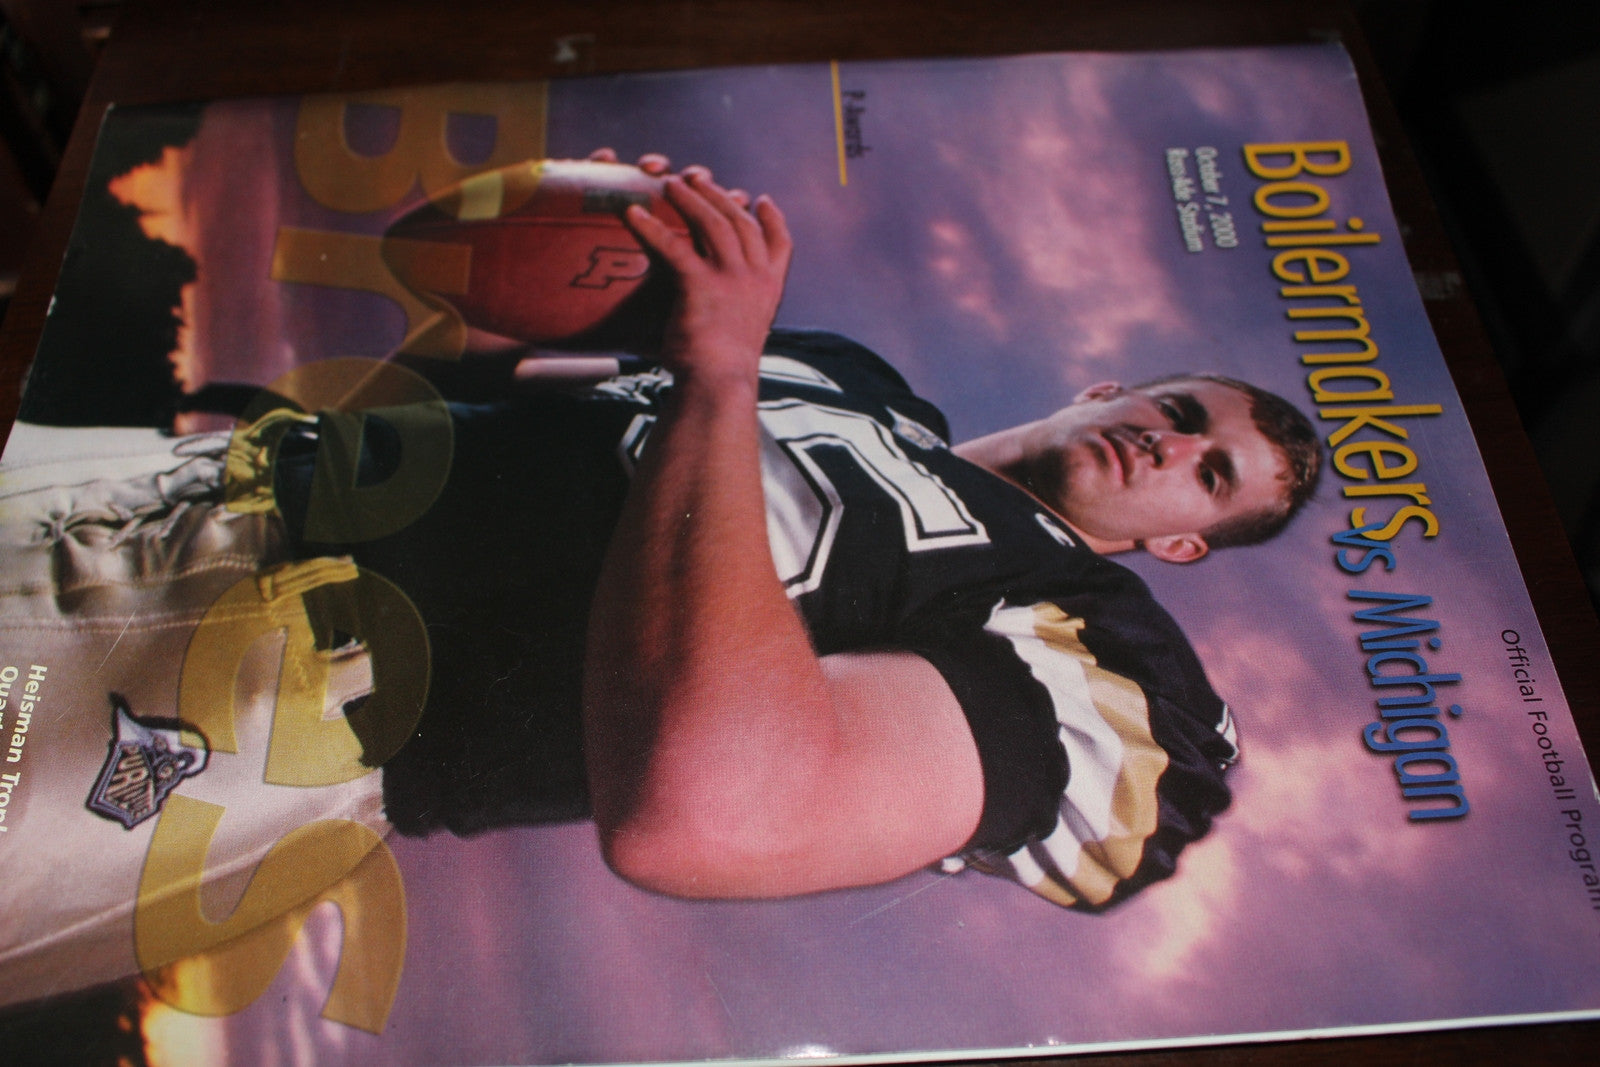 2000 Purdue vs Michigan Football Program, Drew Brees on Cover - Vintage Indy Sports